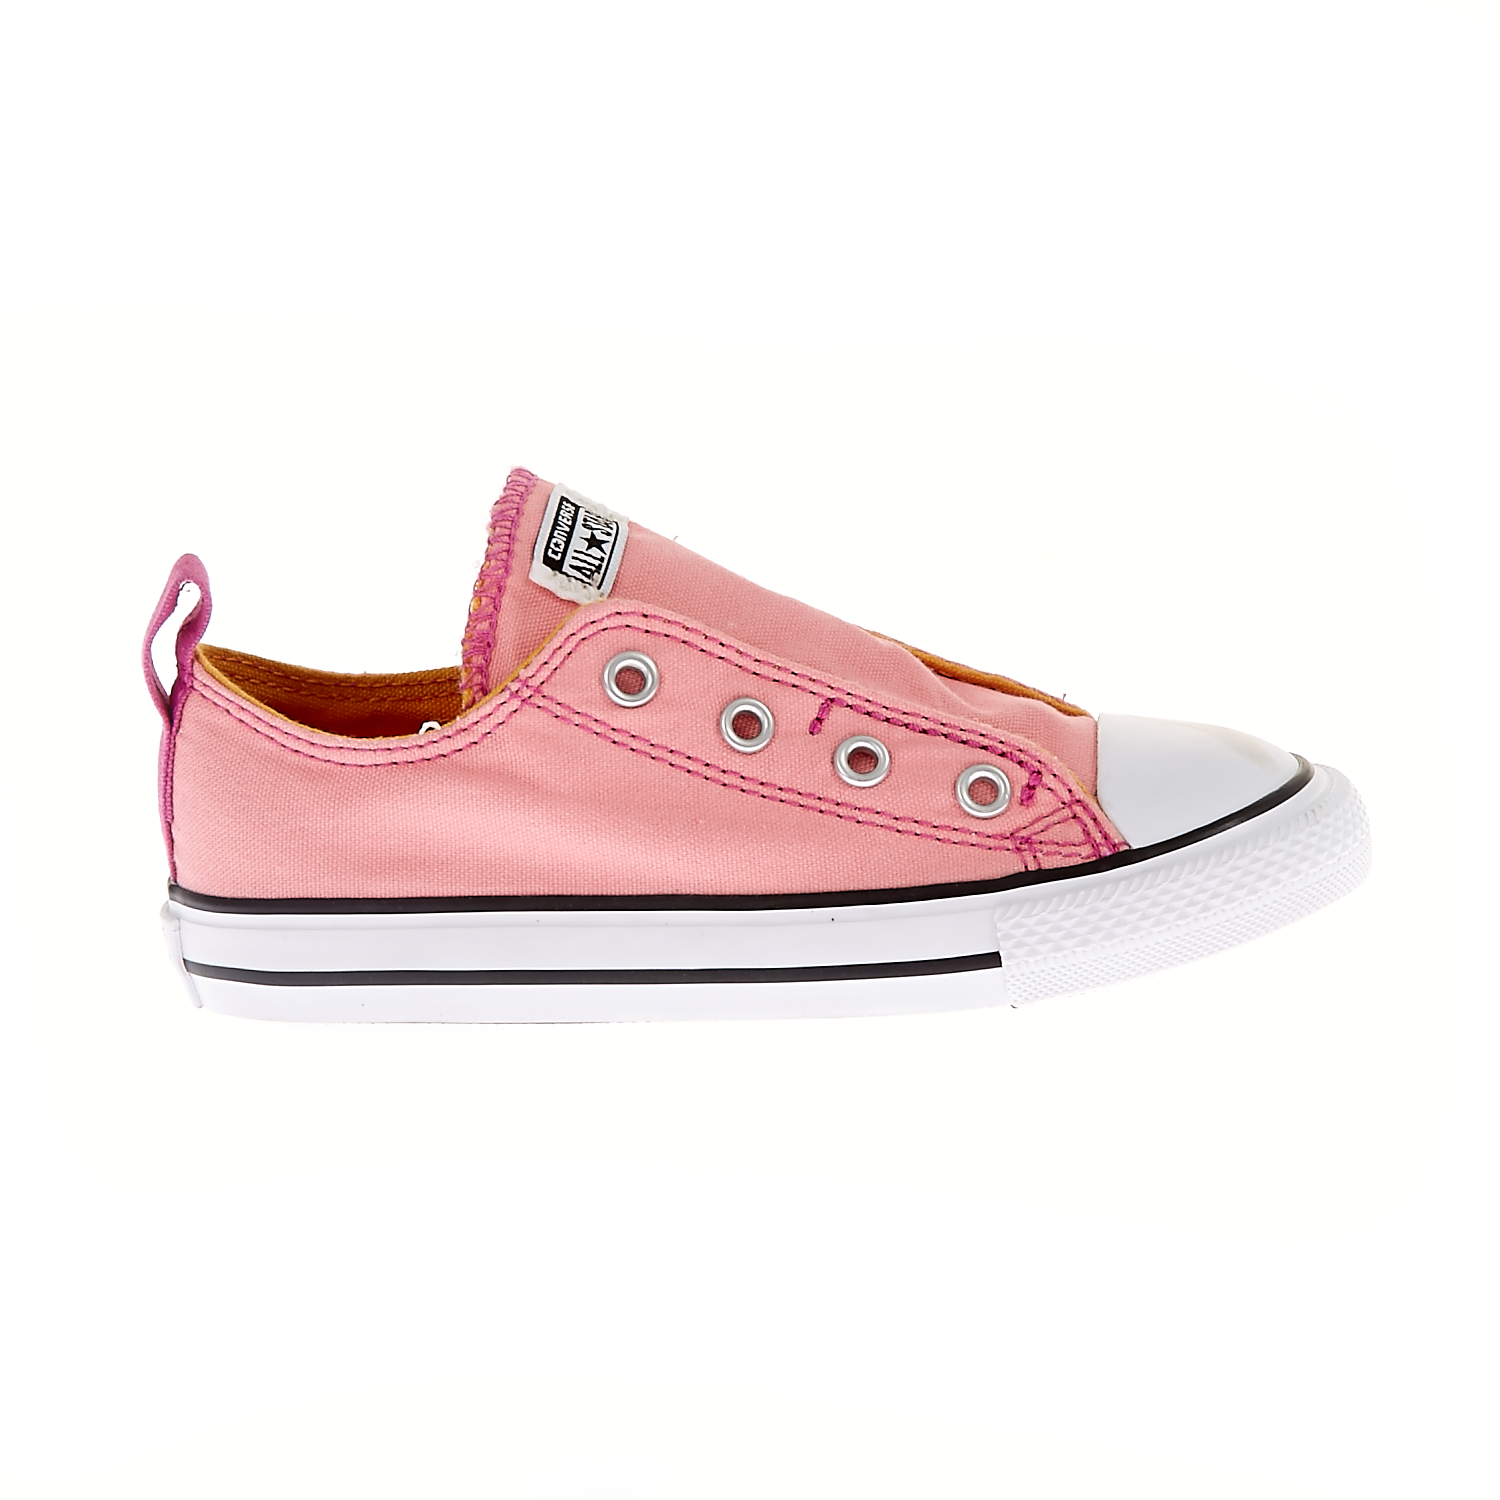 CONVERSE - Βρεφικά παπούστια Chuck Taylor All Star Simple S ροζ παιδικά baby παπούτσια sneakers